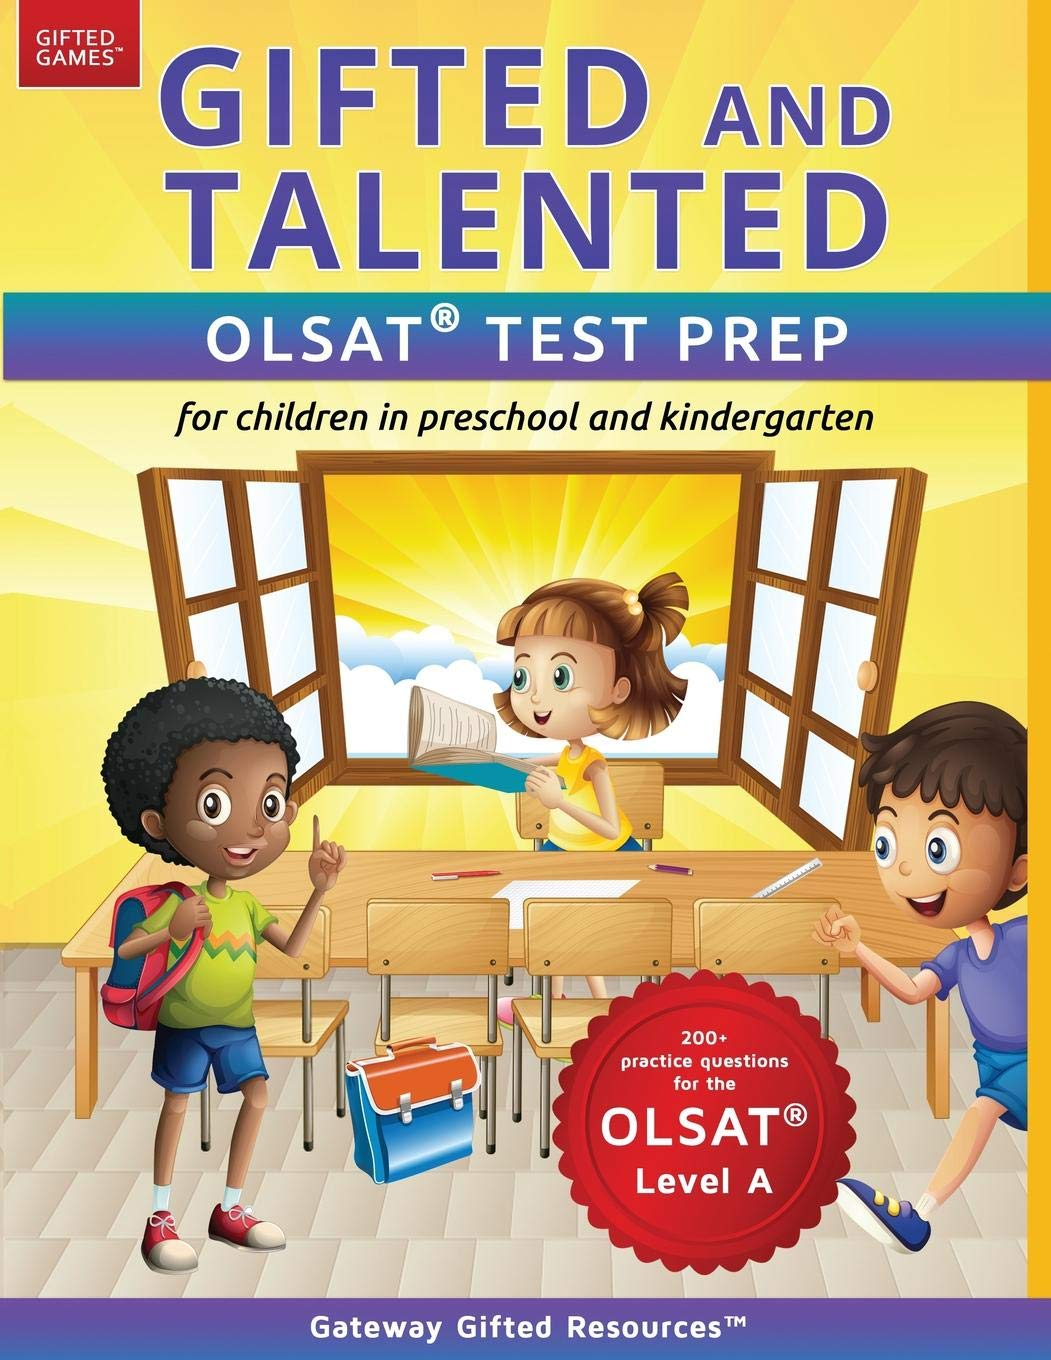 Amazon Gifted And Talented OLSAT Test Prep